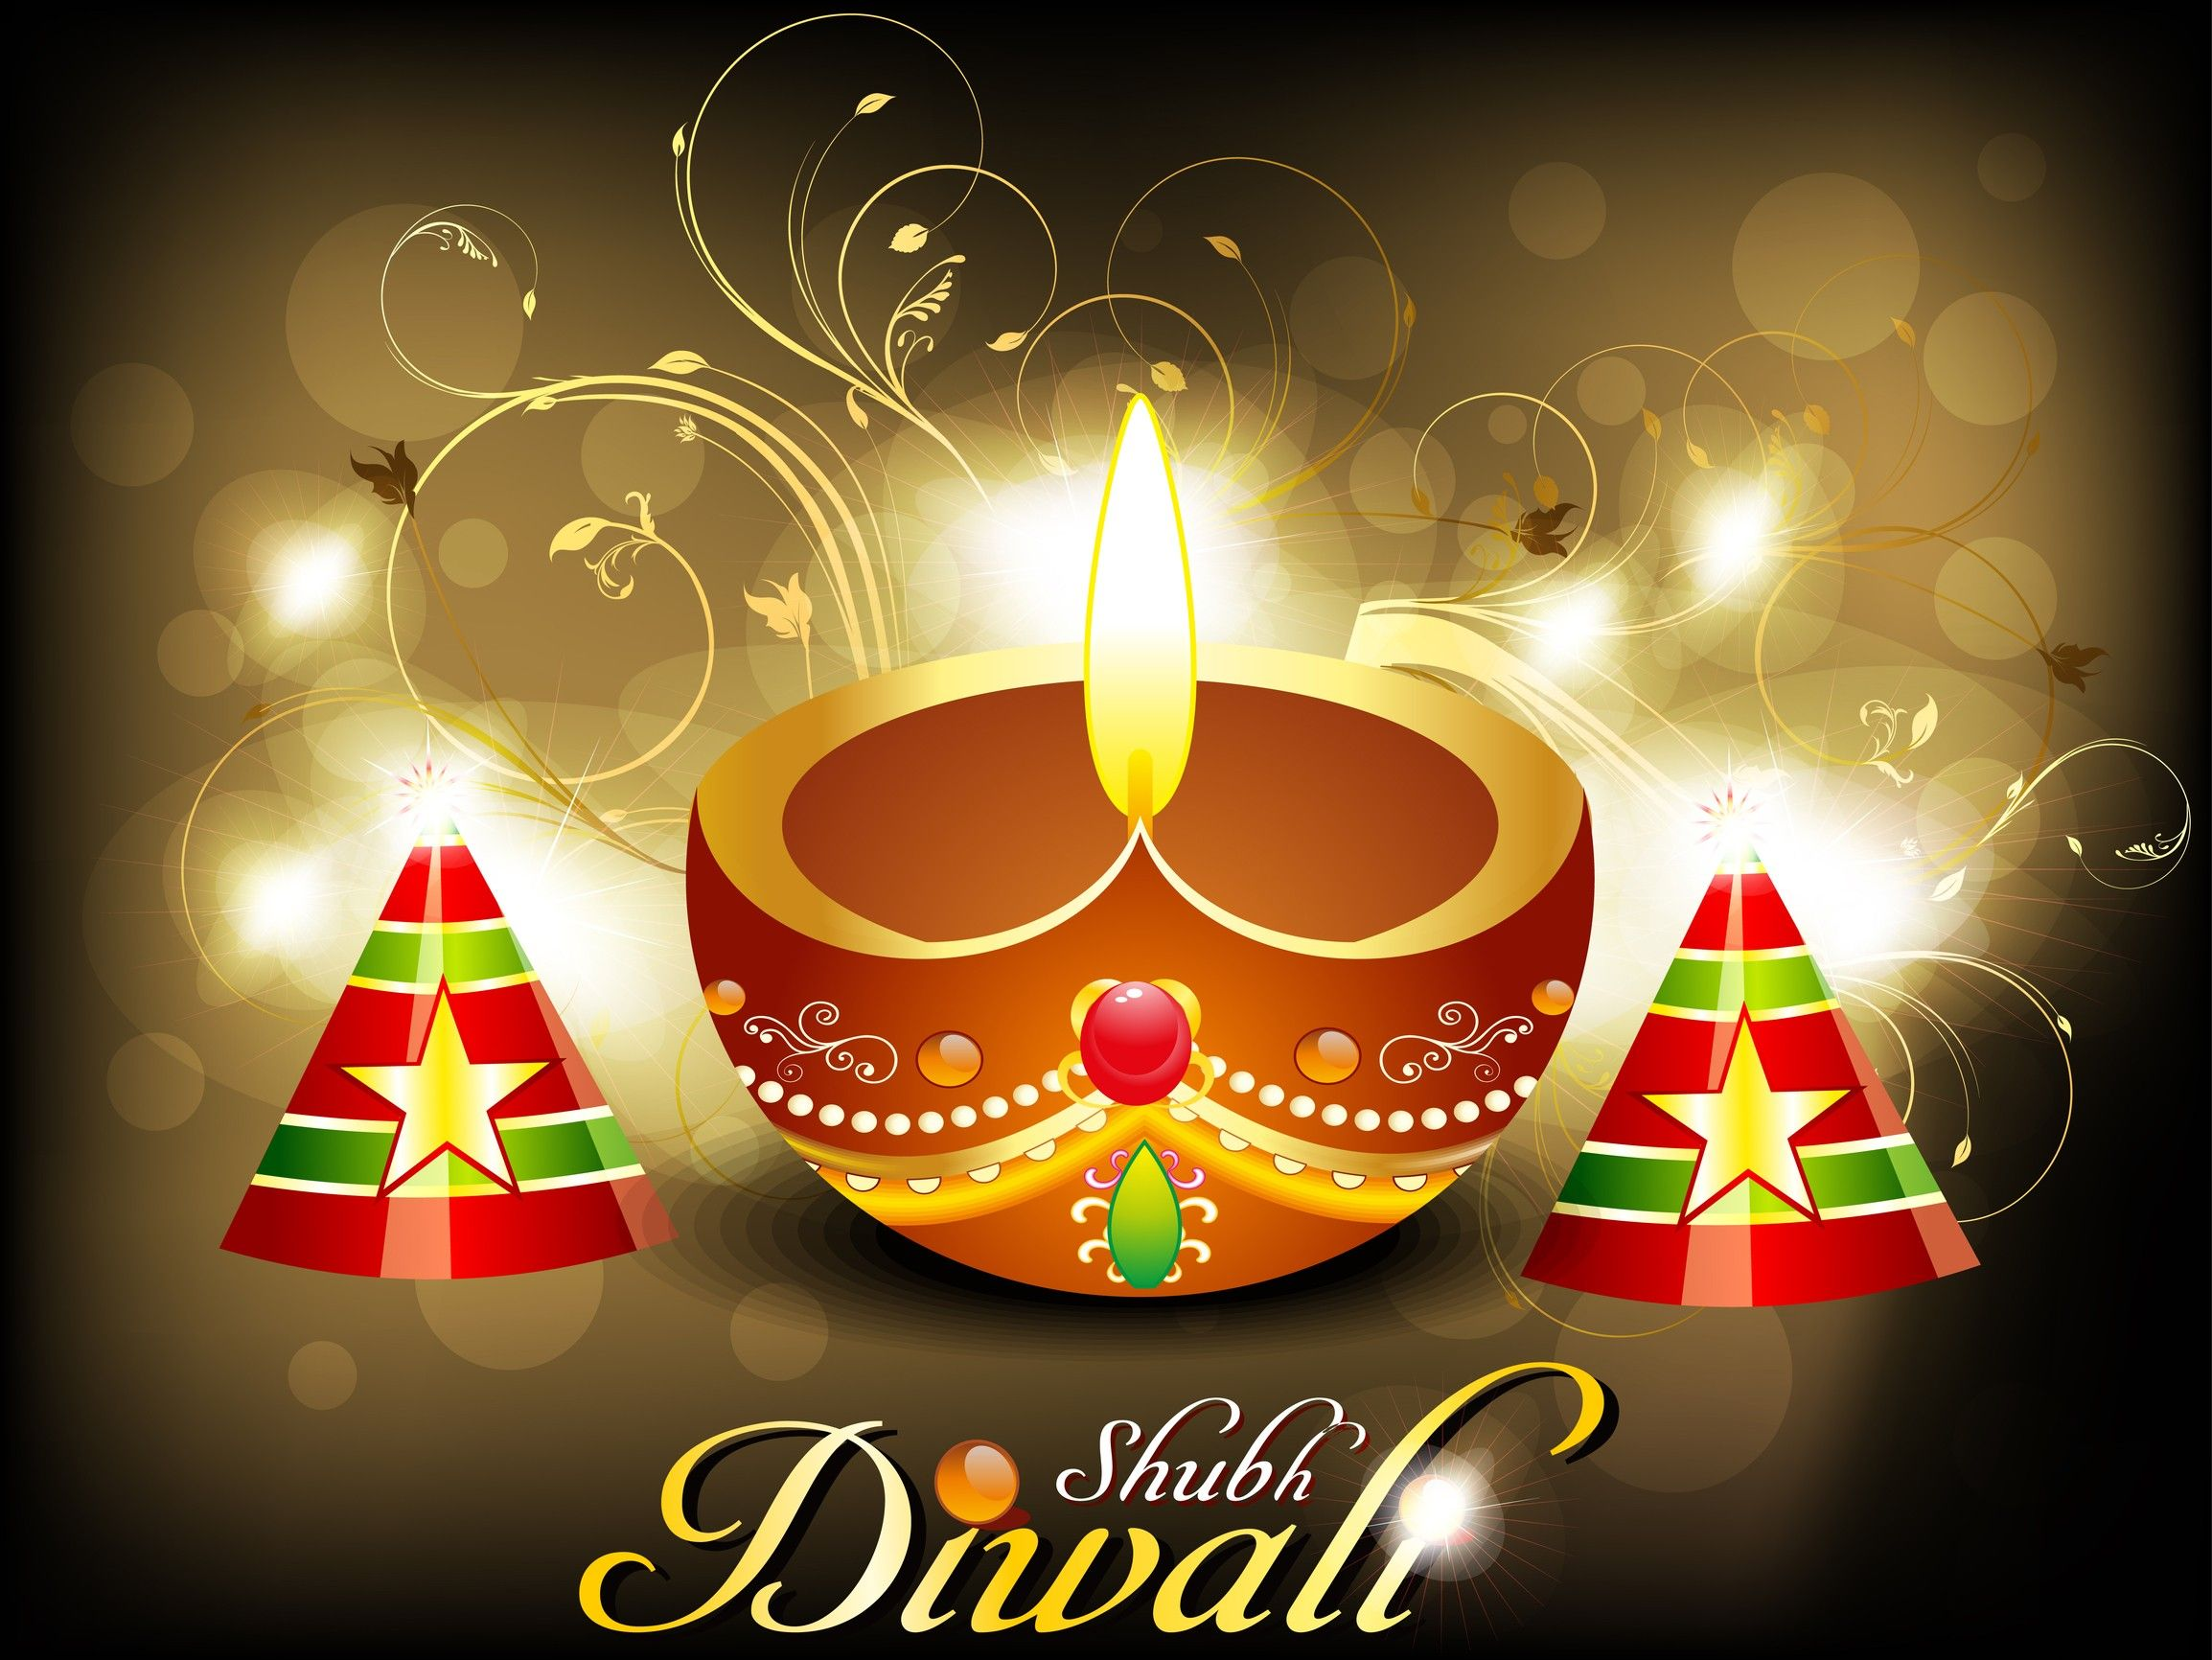 Wallpaper download diwali - Http Imgcluster Com Happy Diwali Wishes Wallpaper